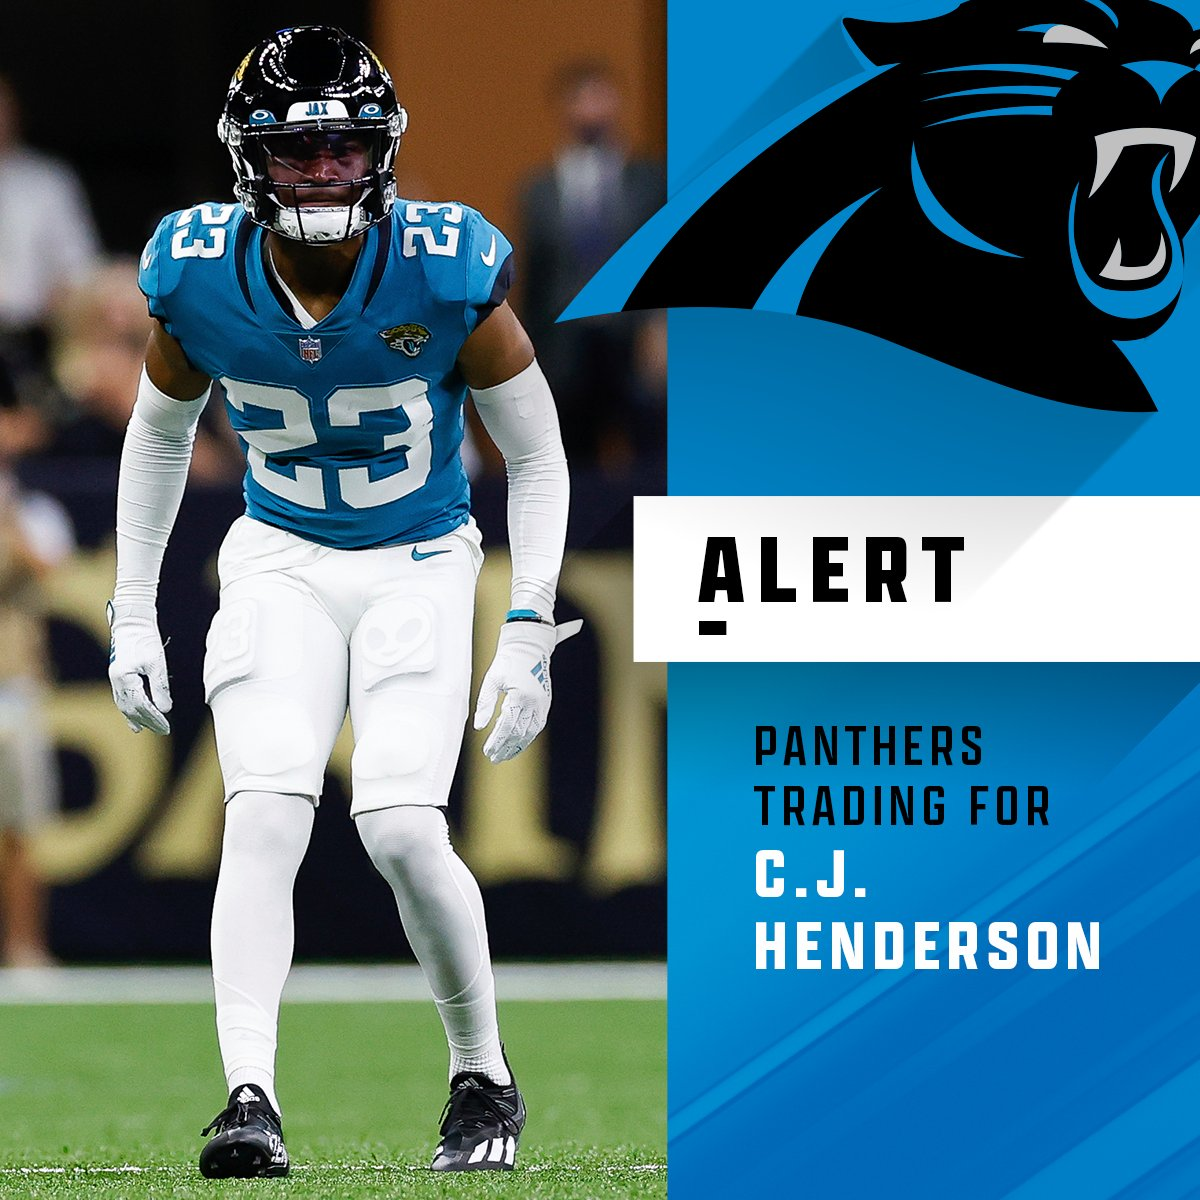 test Twitter Media - Jaguars trading CB C.J. Henderson and a fifth-round pick to the Panthers in exchange for TE Dan Arnold and a third-round pick. https://t.co/vVPB0Ou8C2